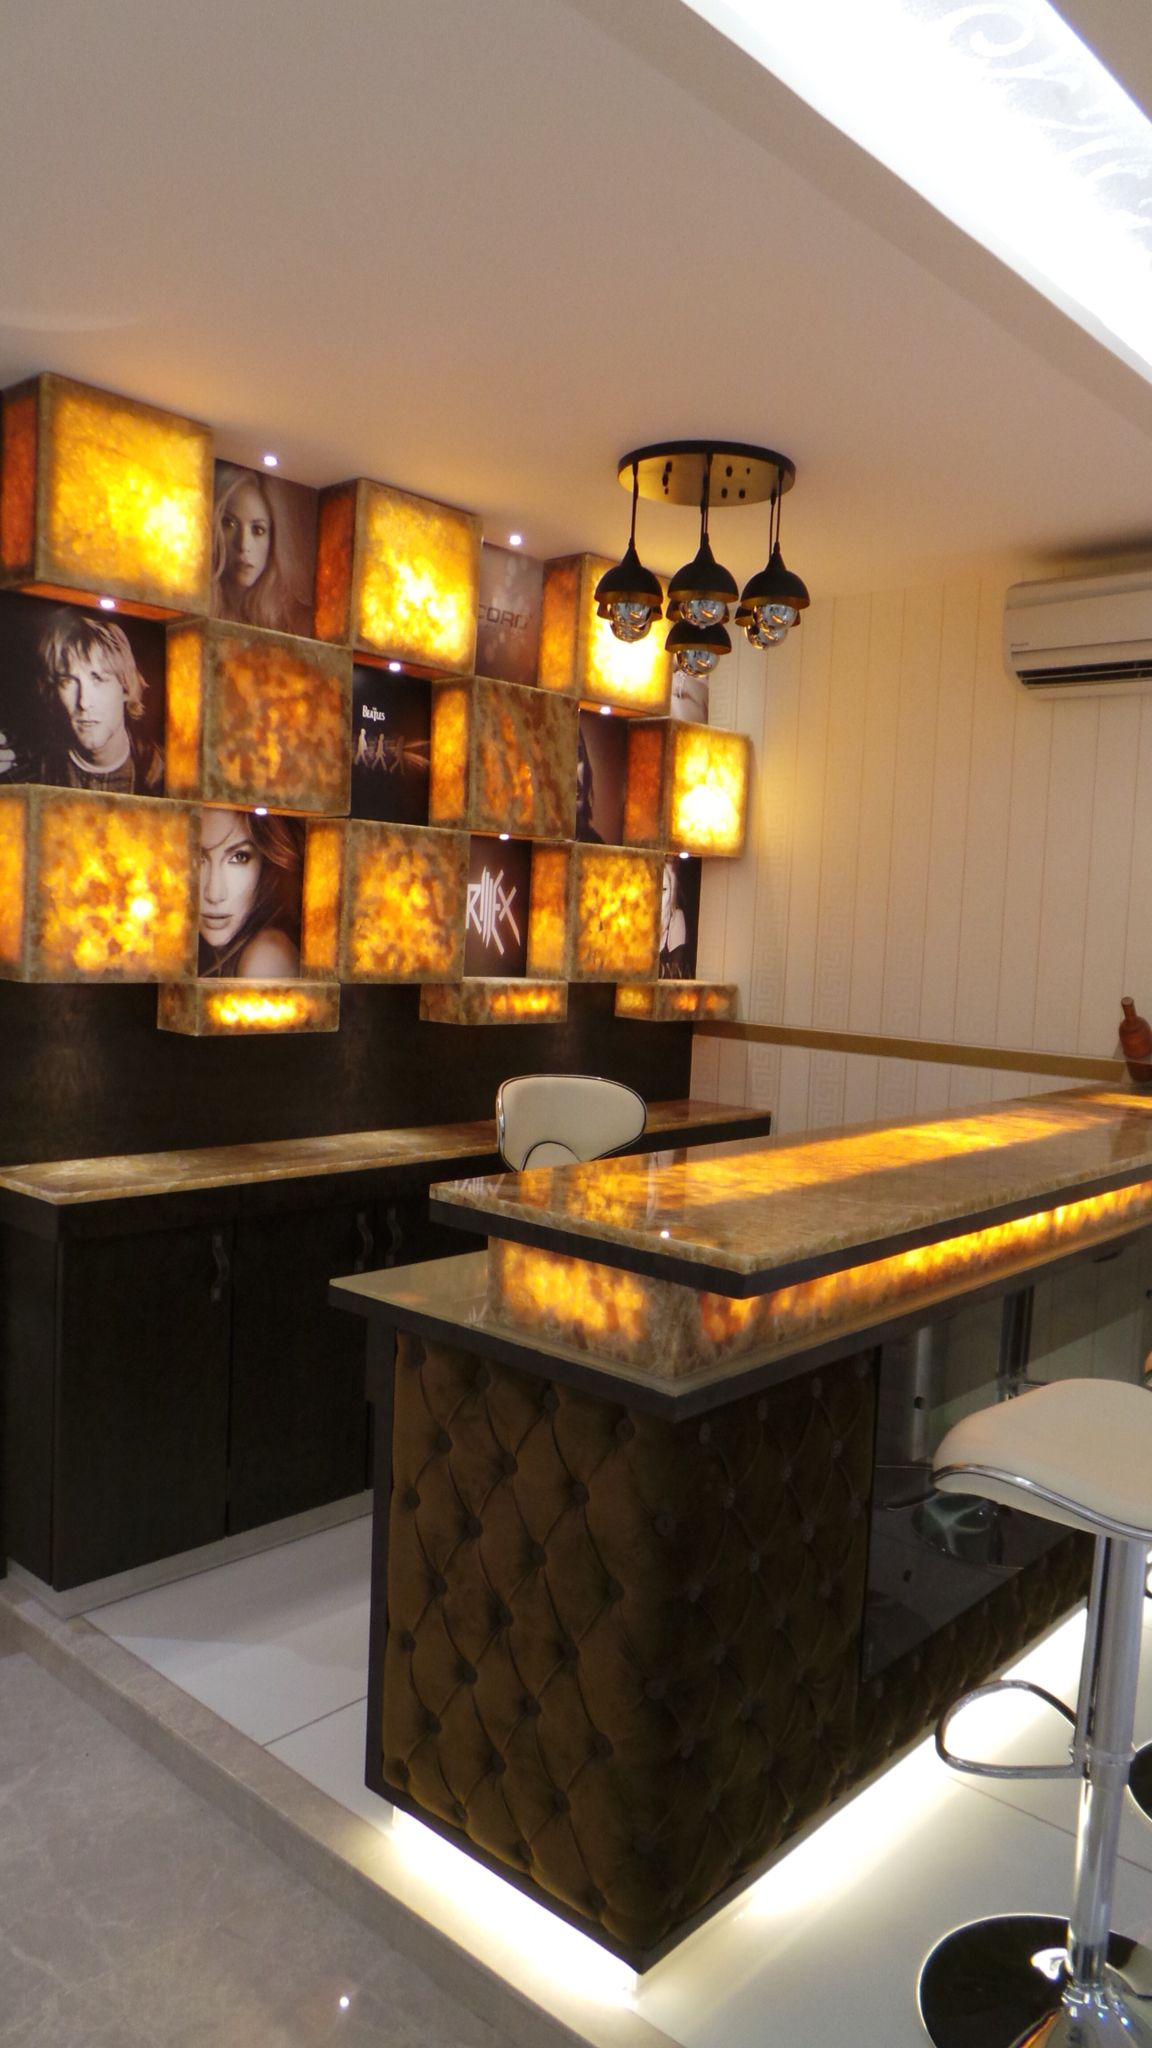 Onyx Marble Bar Counter Designed By Sonivipuldesigns Soni Vipul Designs Pinterest Bar